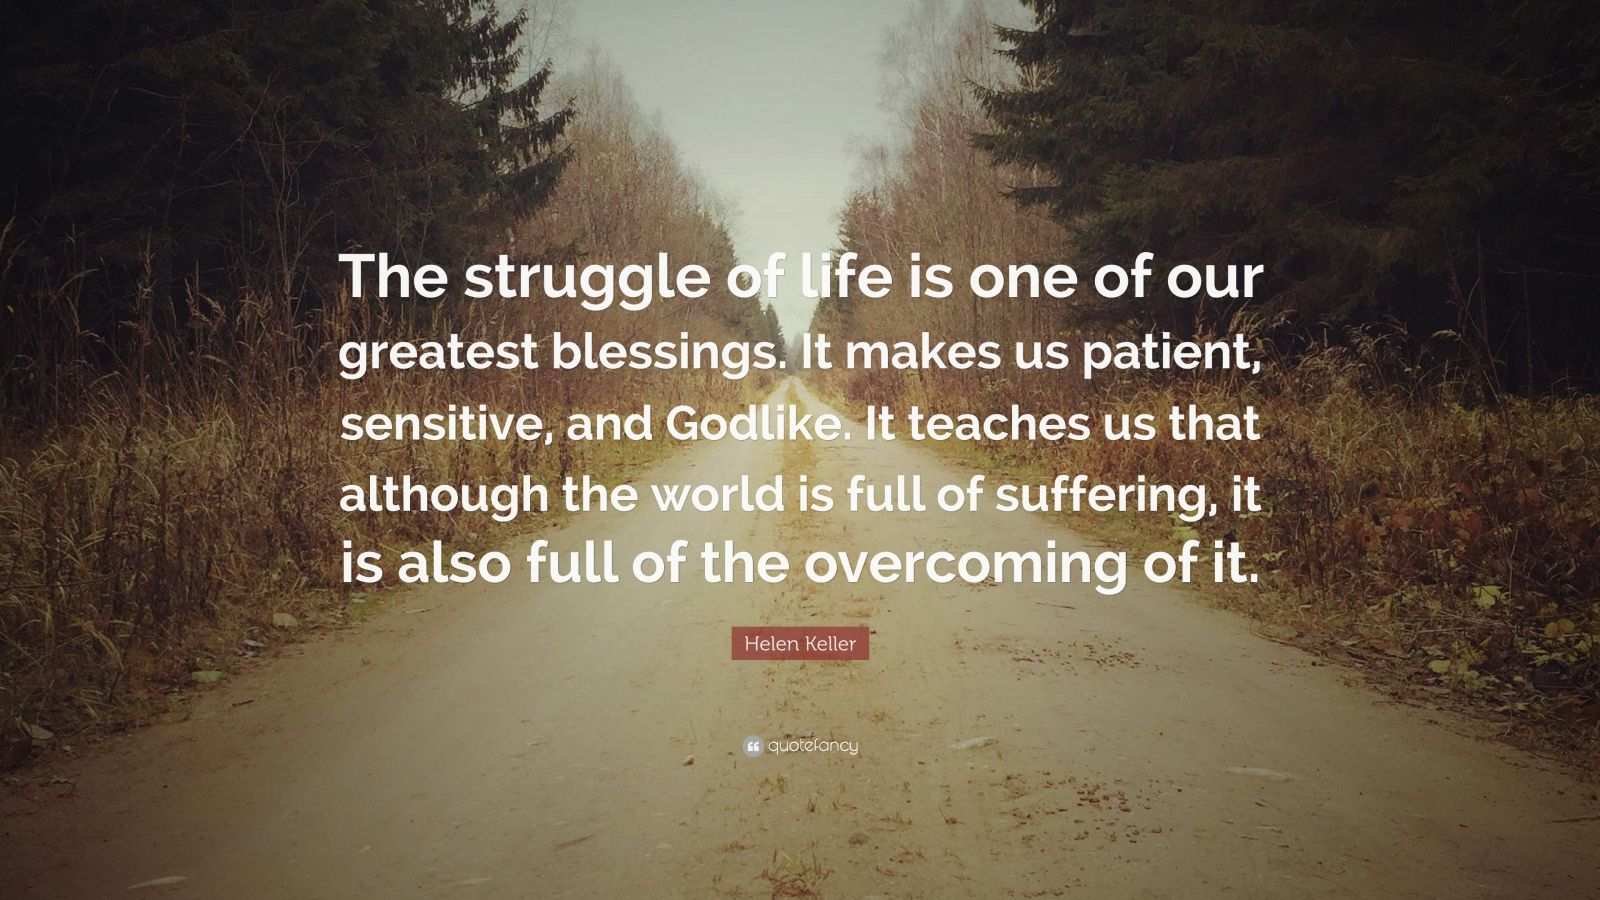 Dalai Lama Wallpaper Quotes Helen Keller Quote The Struggle Of Life Is One Of Our